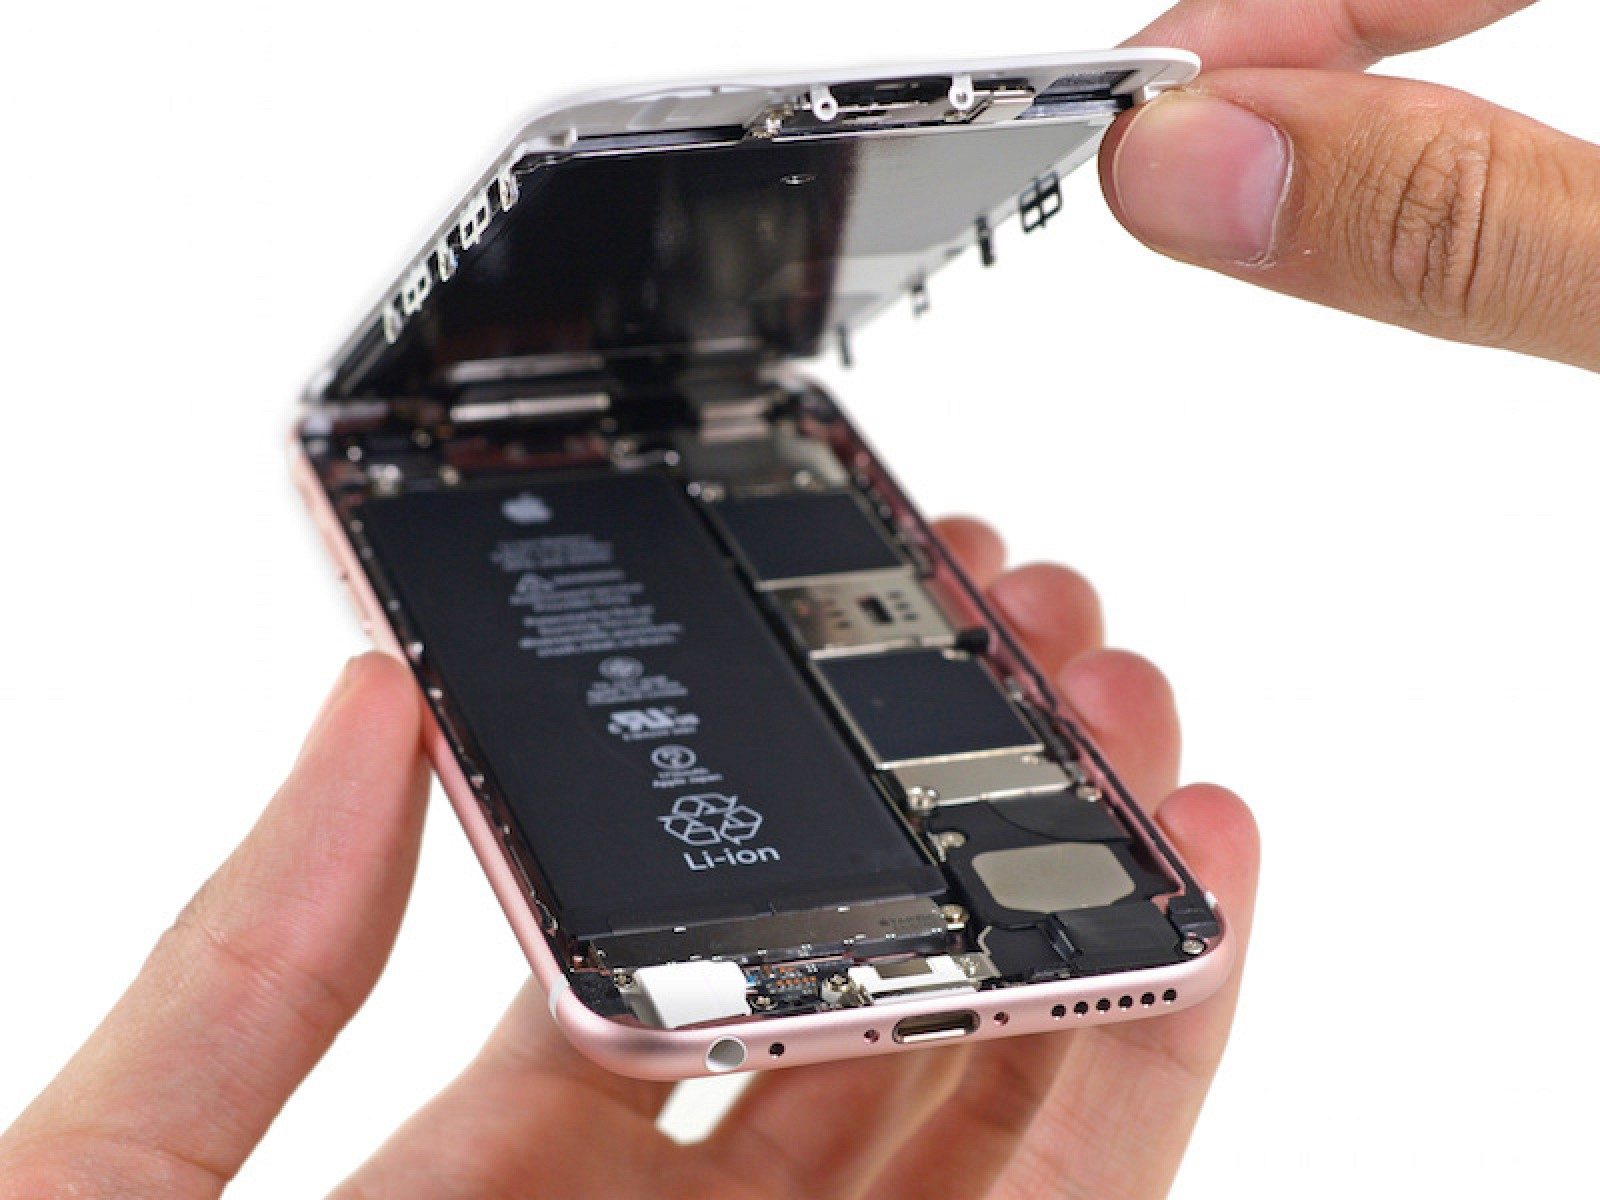 iPhone 6s Teardown: 1715 mAh Battery, Taptic Engine X-Ray, 3D Touch Display